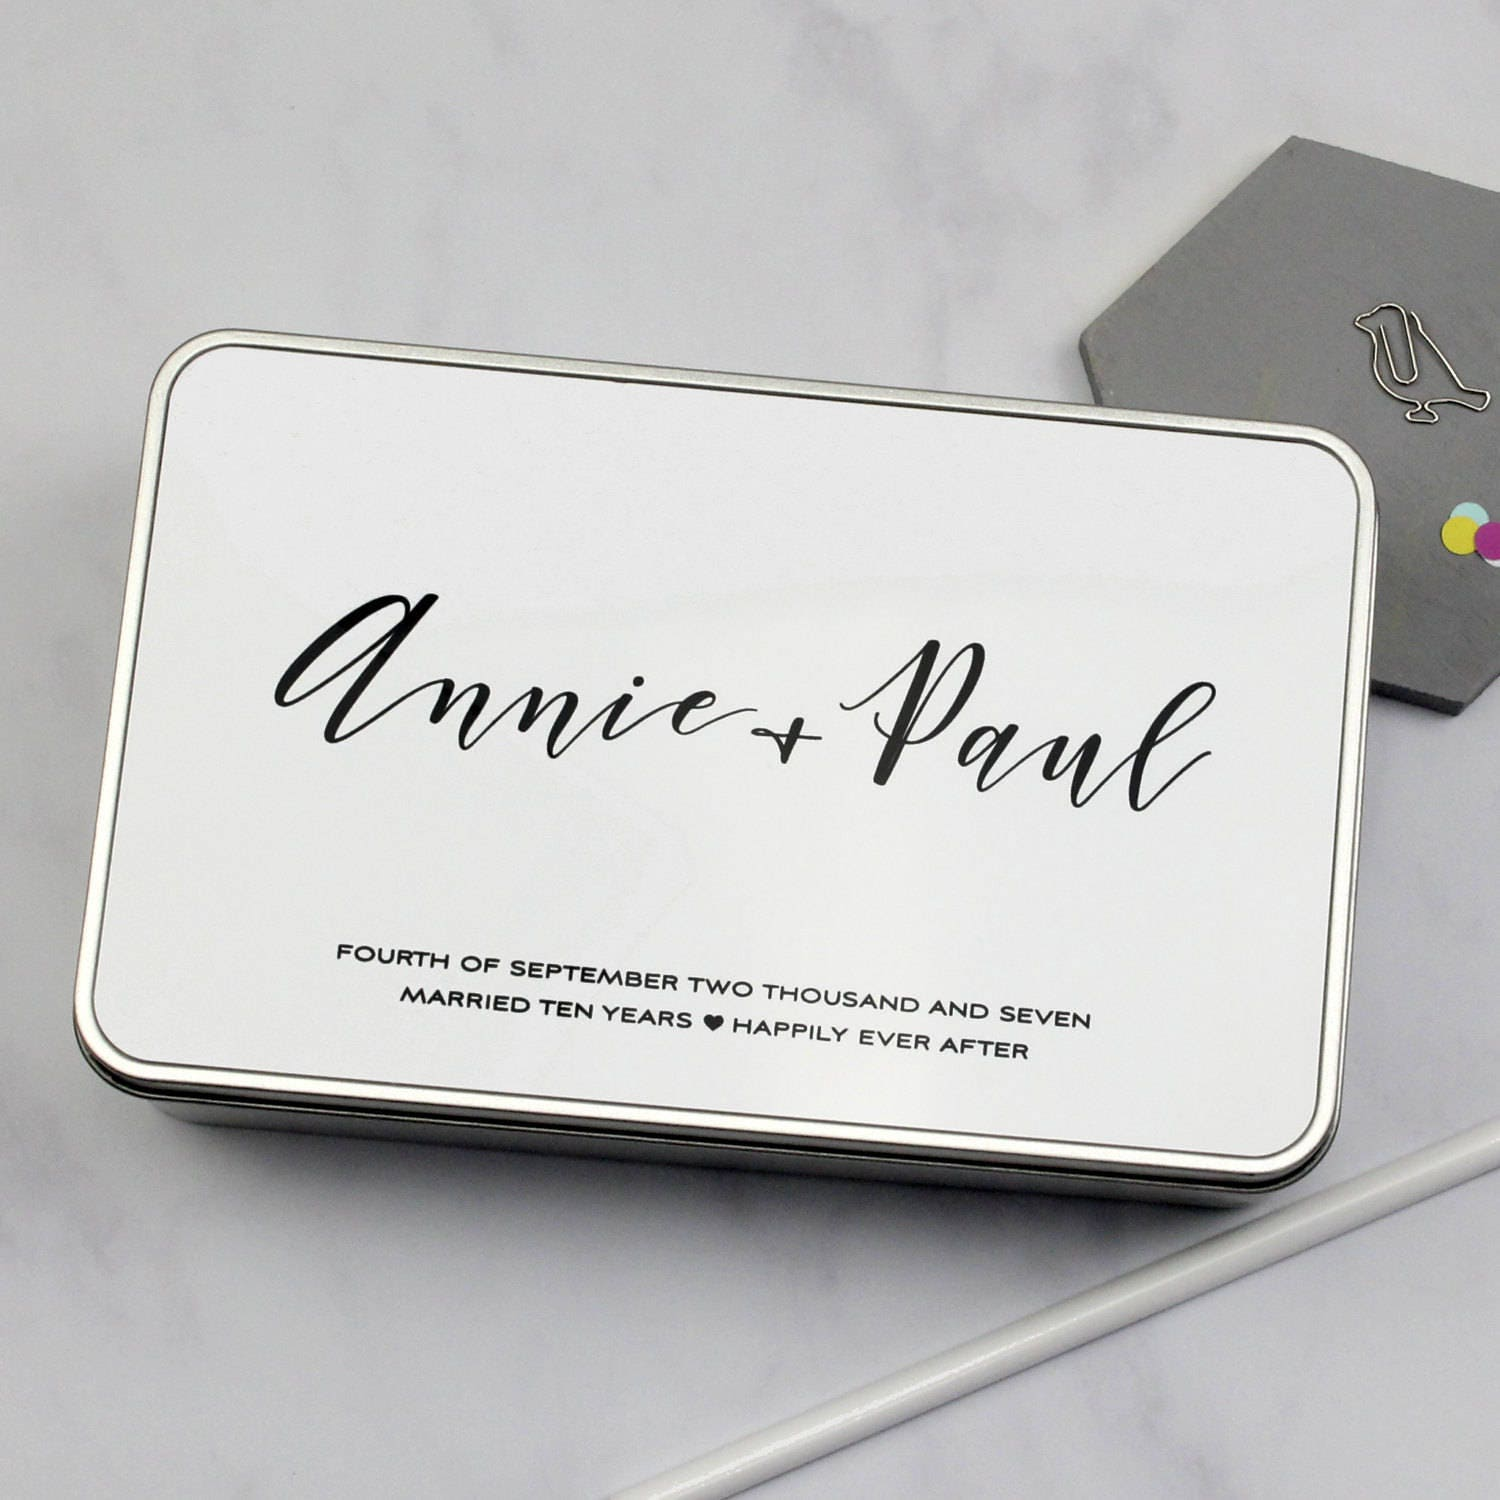 Description This Personalised Storage Tin Is A Perfectly Practical Present For Tenth Wedding Anniversary